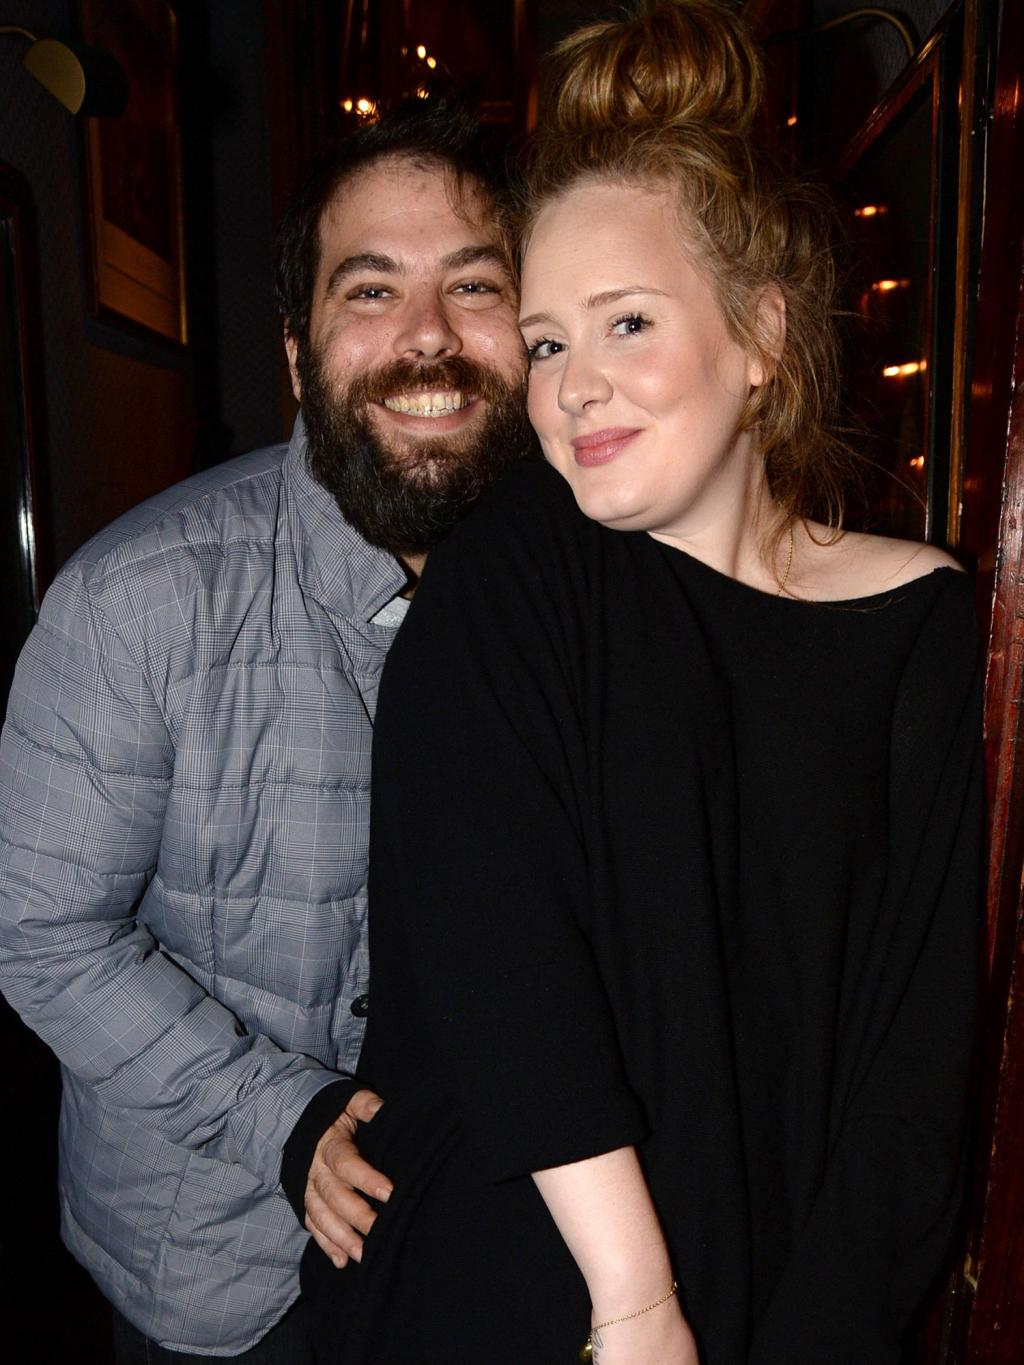 Adele Finally Confirms That She       's Married to Simon Konecki:        I        ve Found My Next Person